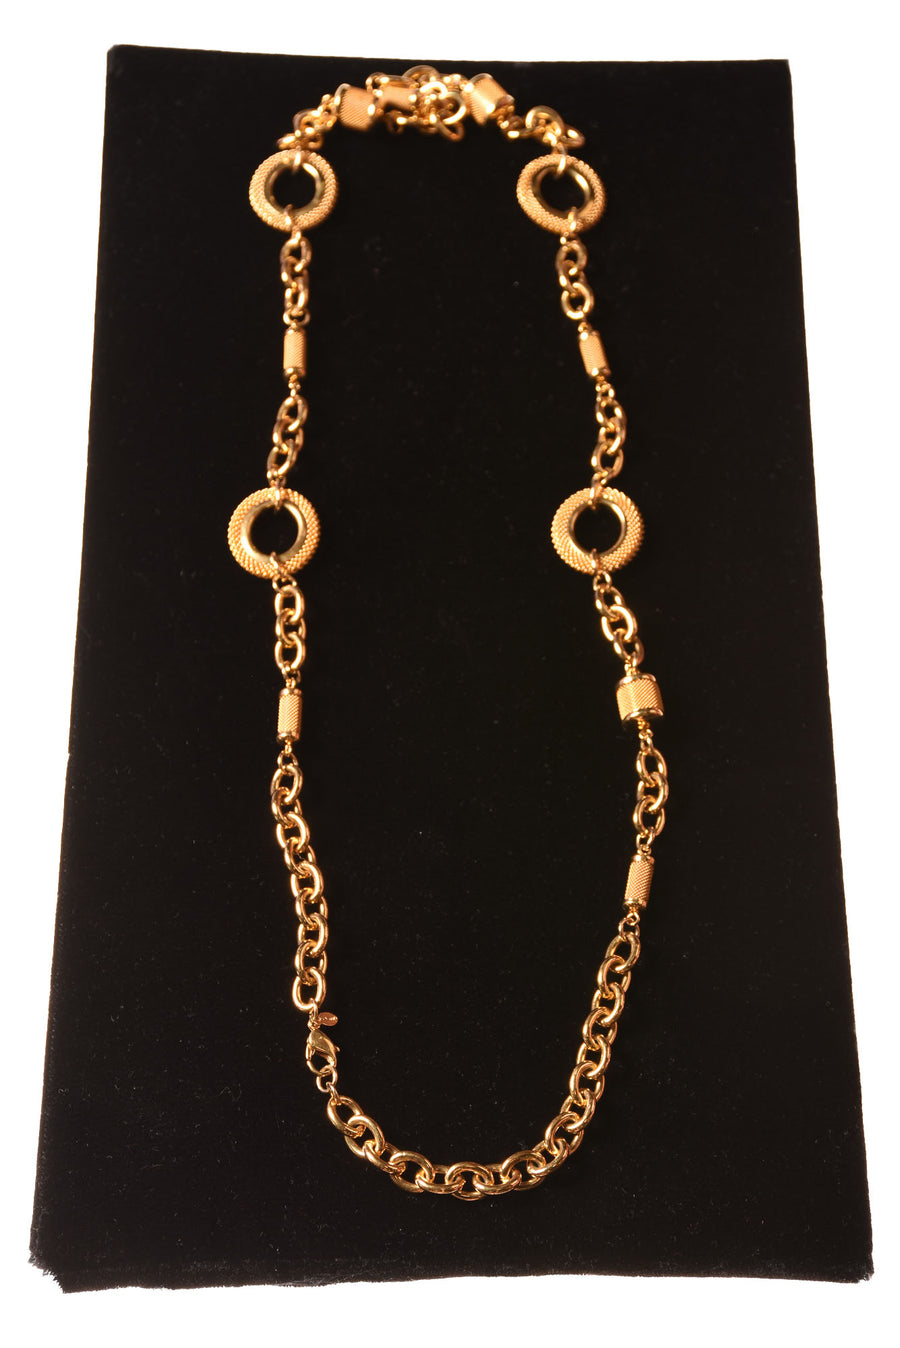 USED No Brand Women's Necklace N/A Goldtone